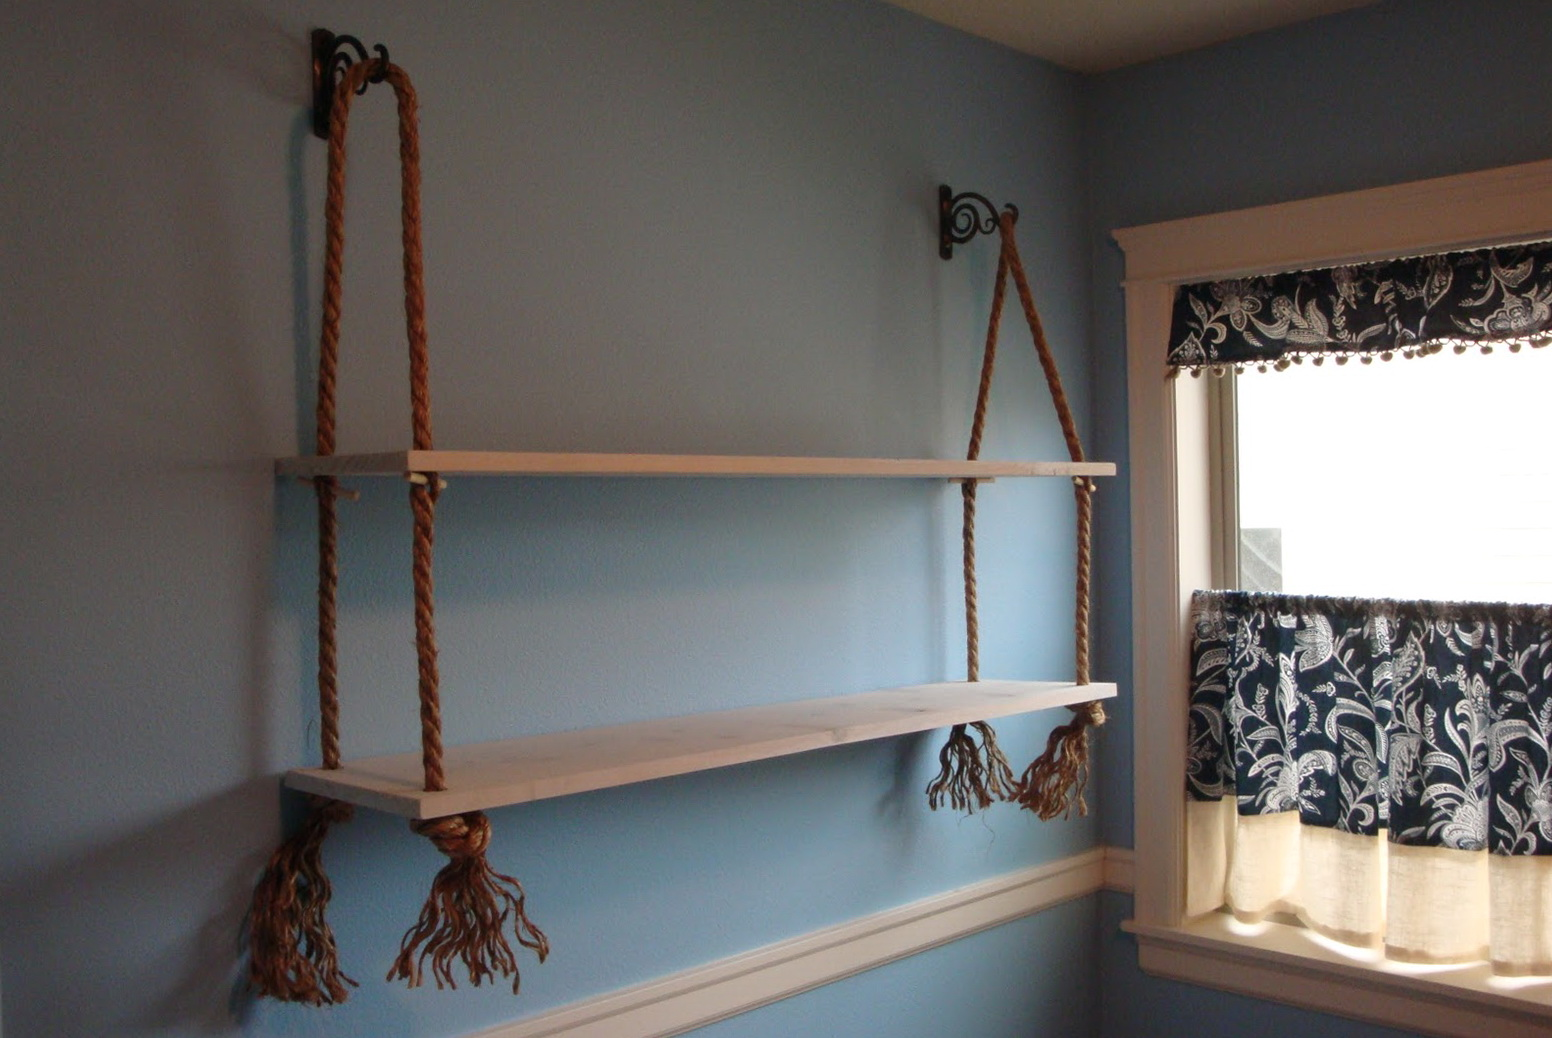 Wall Hanging Shelves Diy